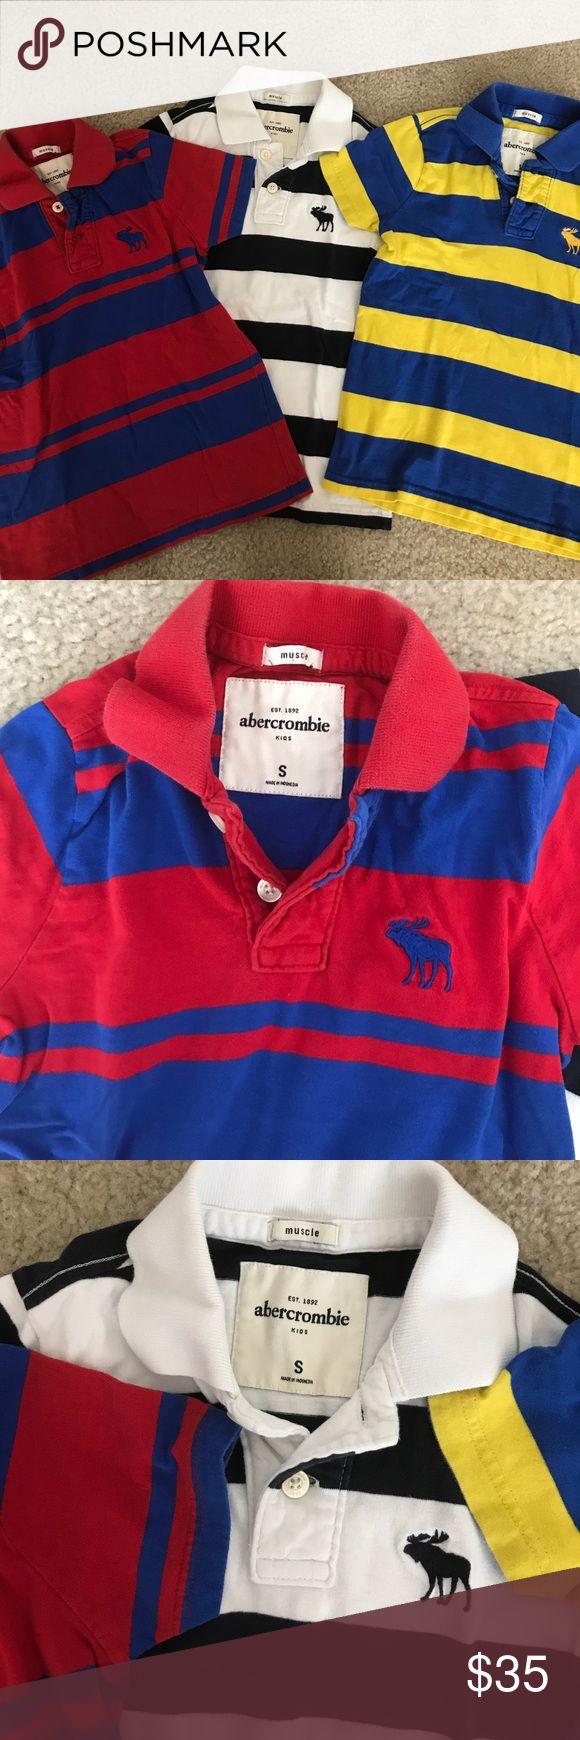 Abercrombie Polo Shirt for Boys Abercrombie for Kids Polo Shirt Size S. in a good condition Abercombie Kids Shirts & Tops Polos